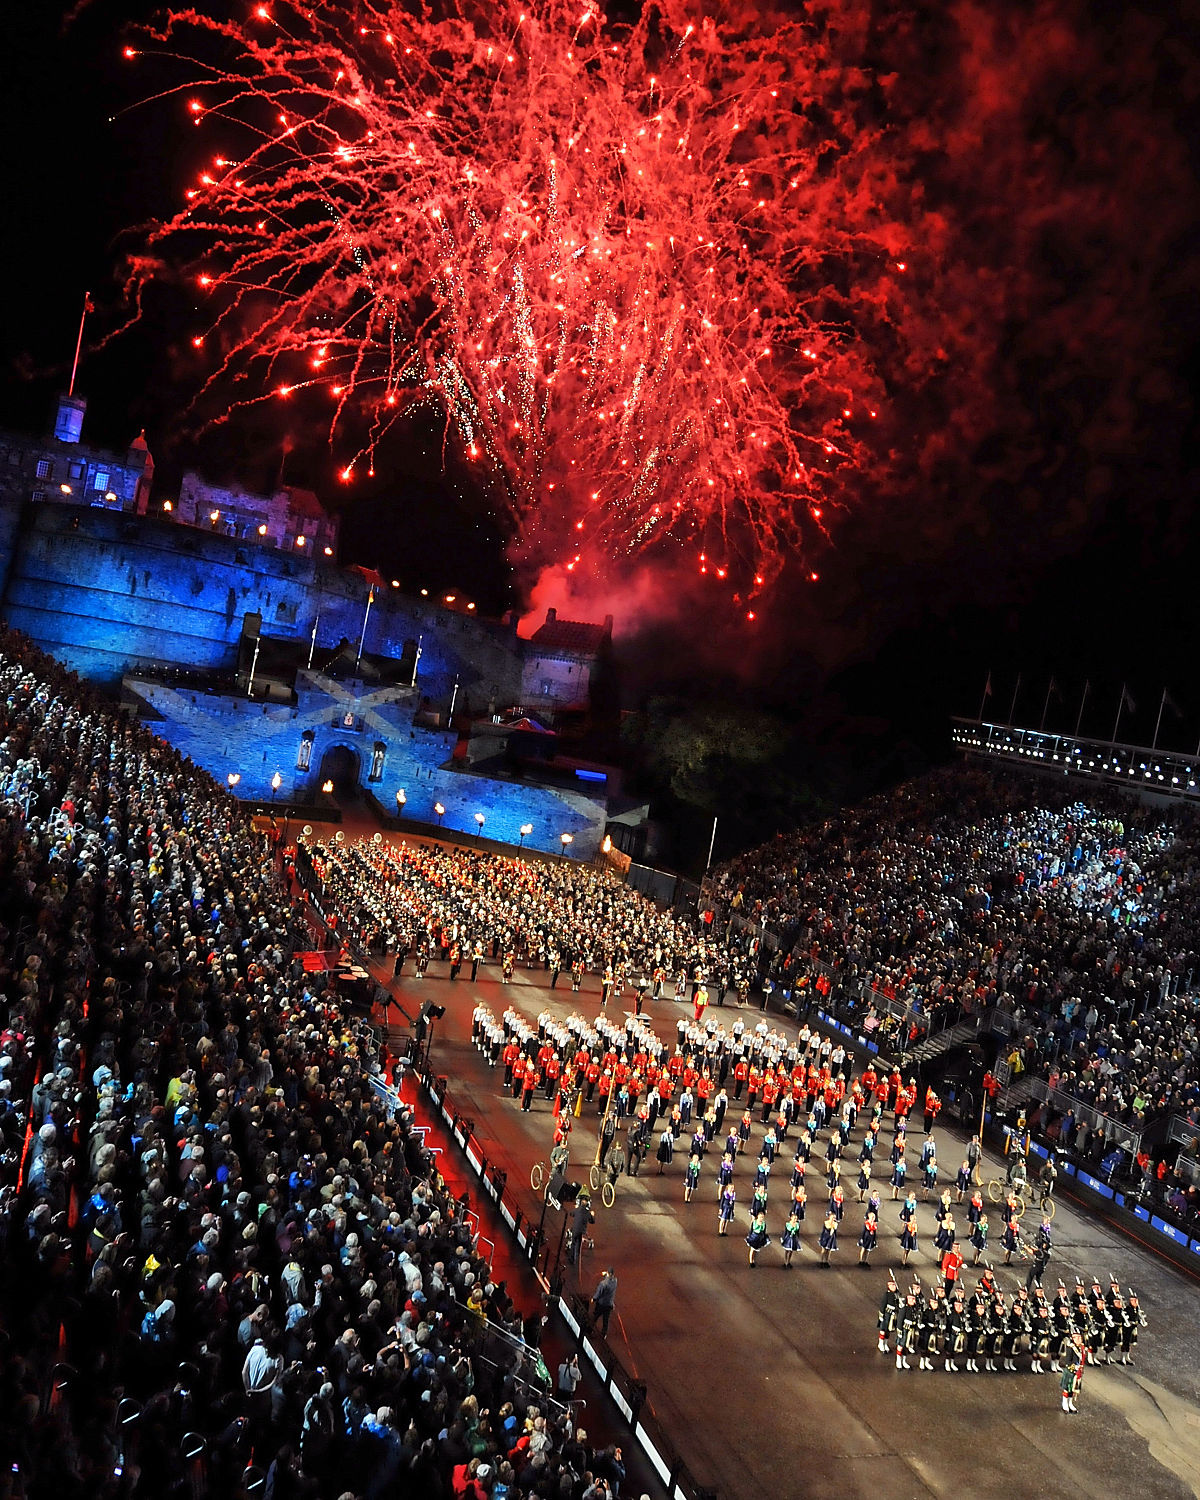 Royal edinburgh military tattoo wikipedia for Royal military tattoo